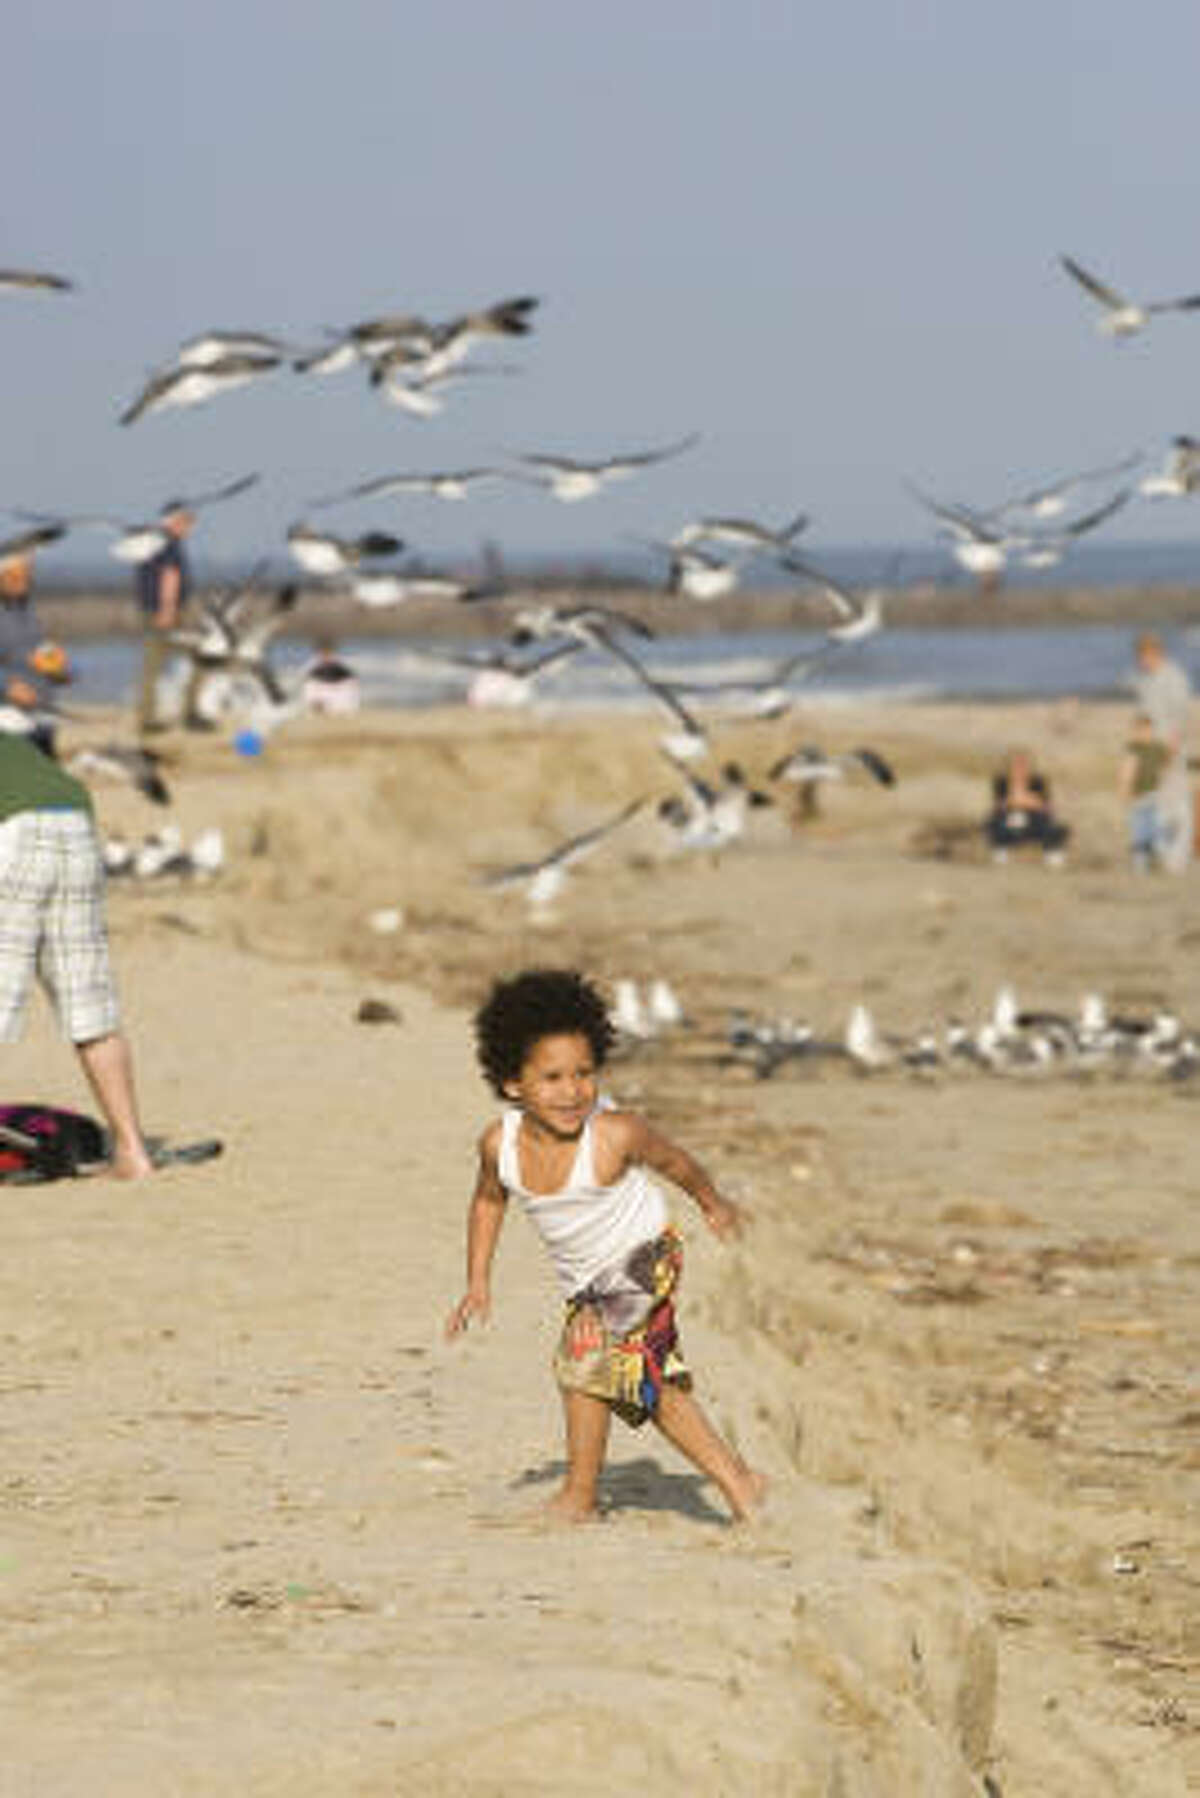 Pearson Williams, 3, plays on a beach in Galveston. A renourishment project is pumping sand to fortify the beaches, making them bigger.